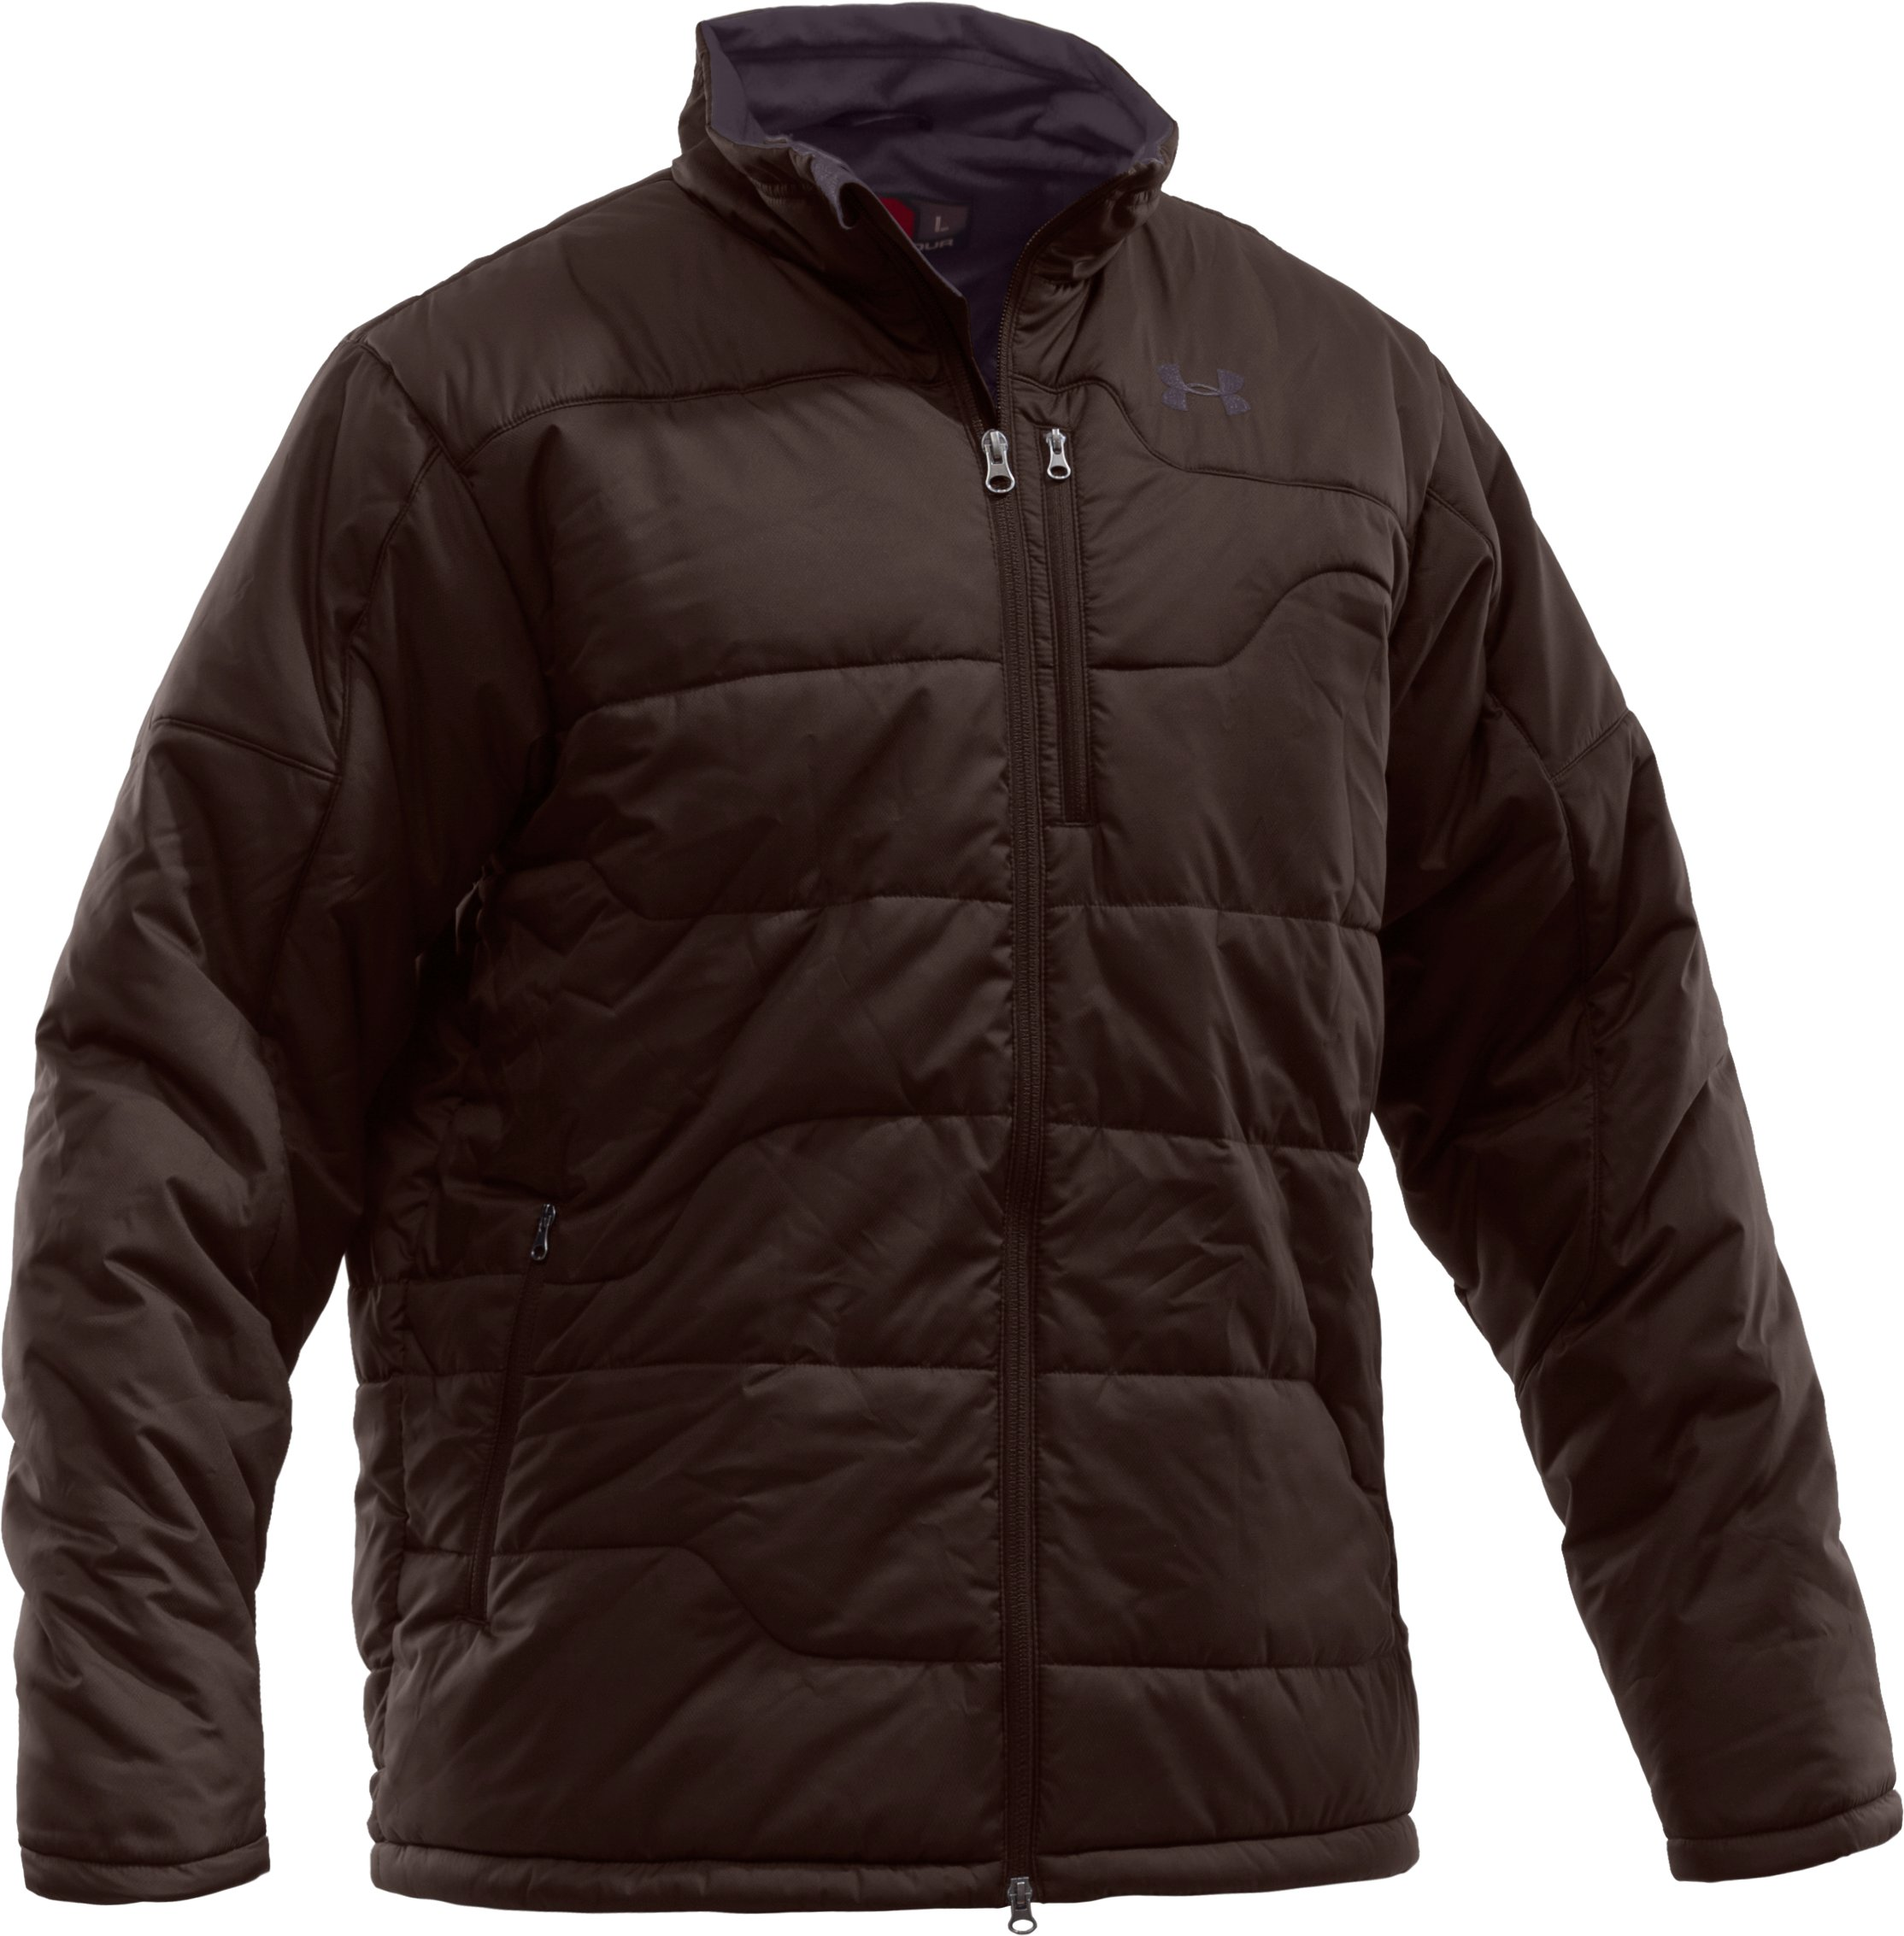 Men's ArmourLoft® Insulated Jacket IV, Timber, zoomed image